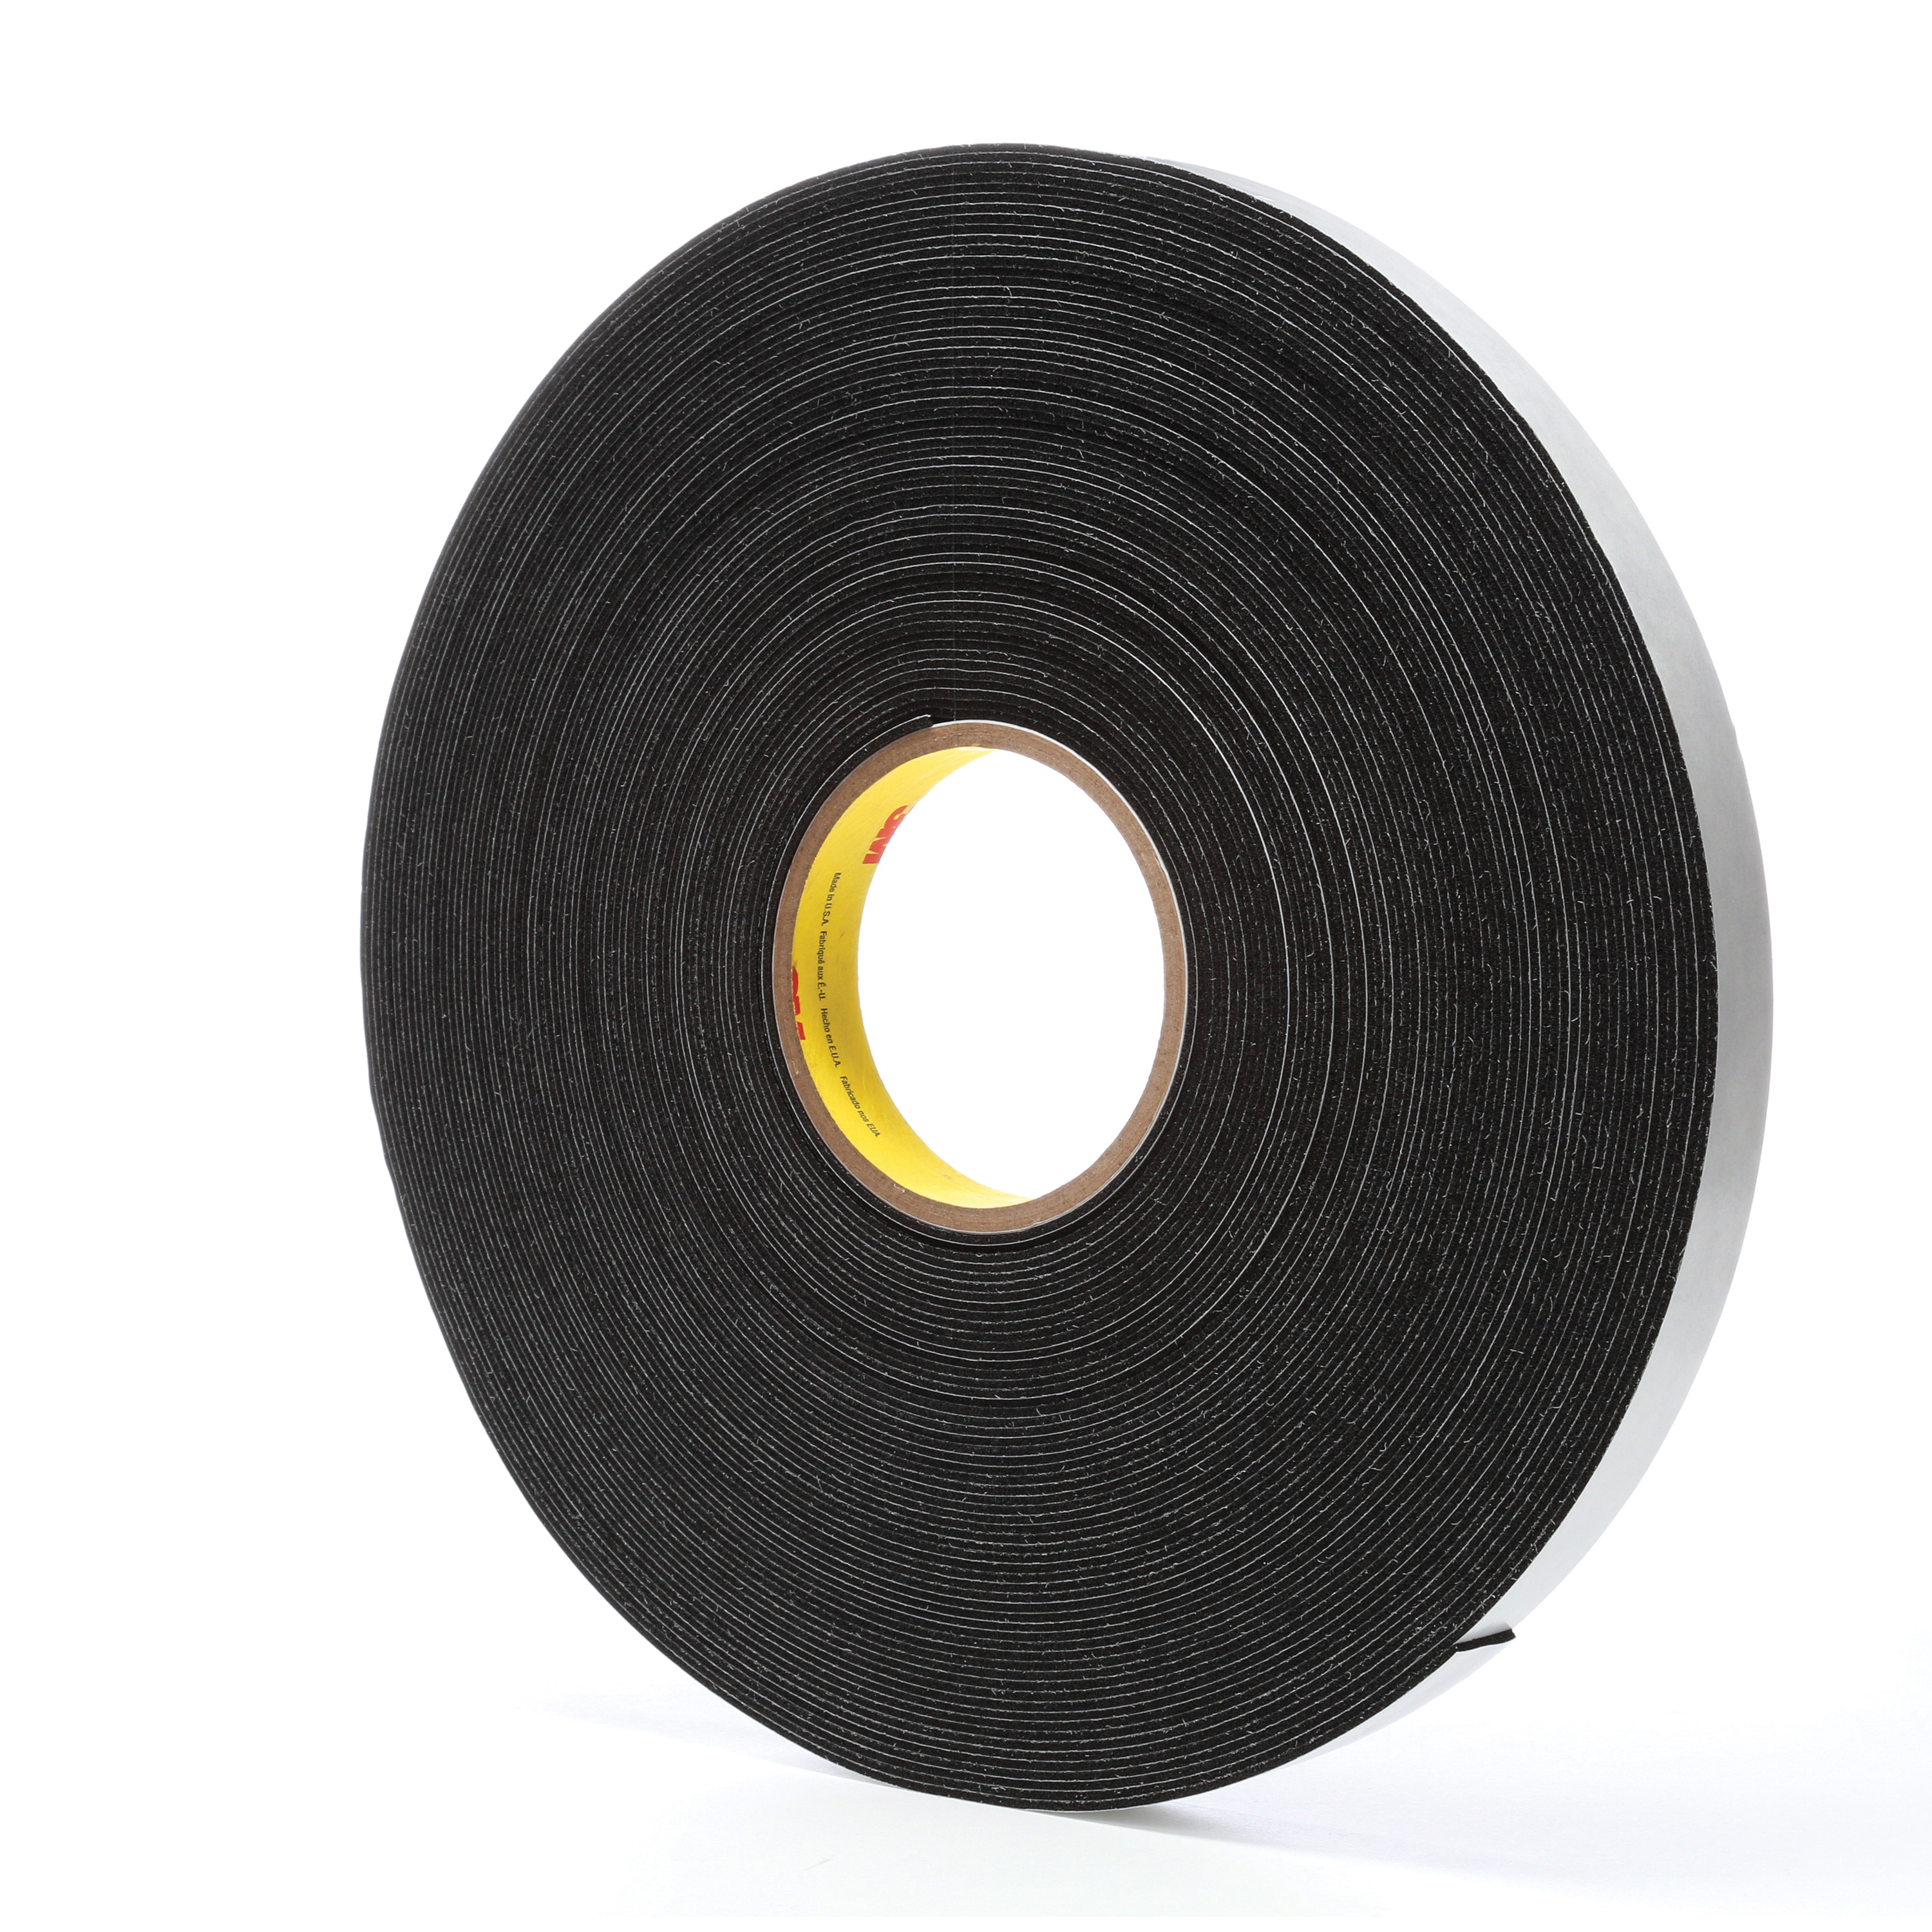 3M™ 021200-03308 Single Coated Foam Tape, 36 yd L x 3/4 in W, 62 mil THK, Acrylic Adhesive, Vinyl Foam Backing, Black